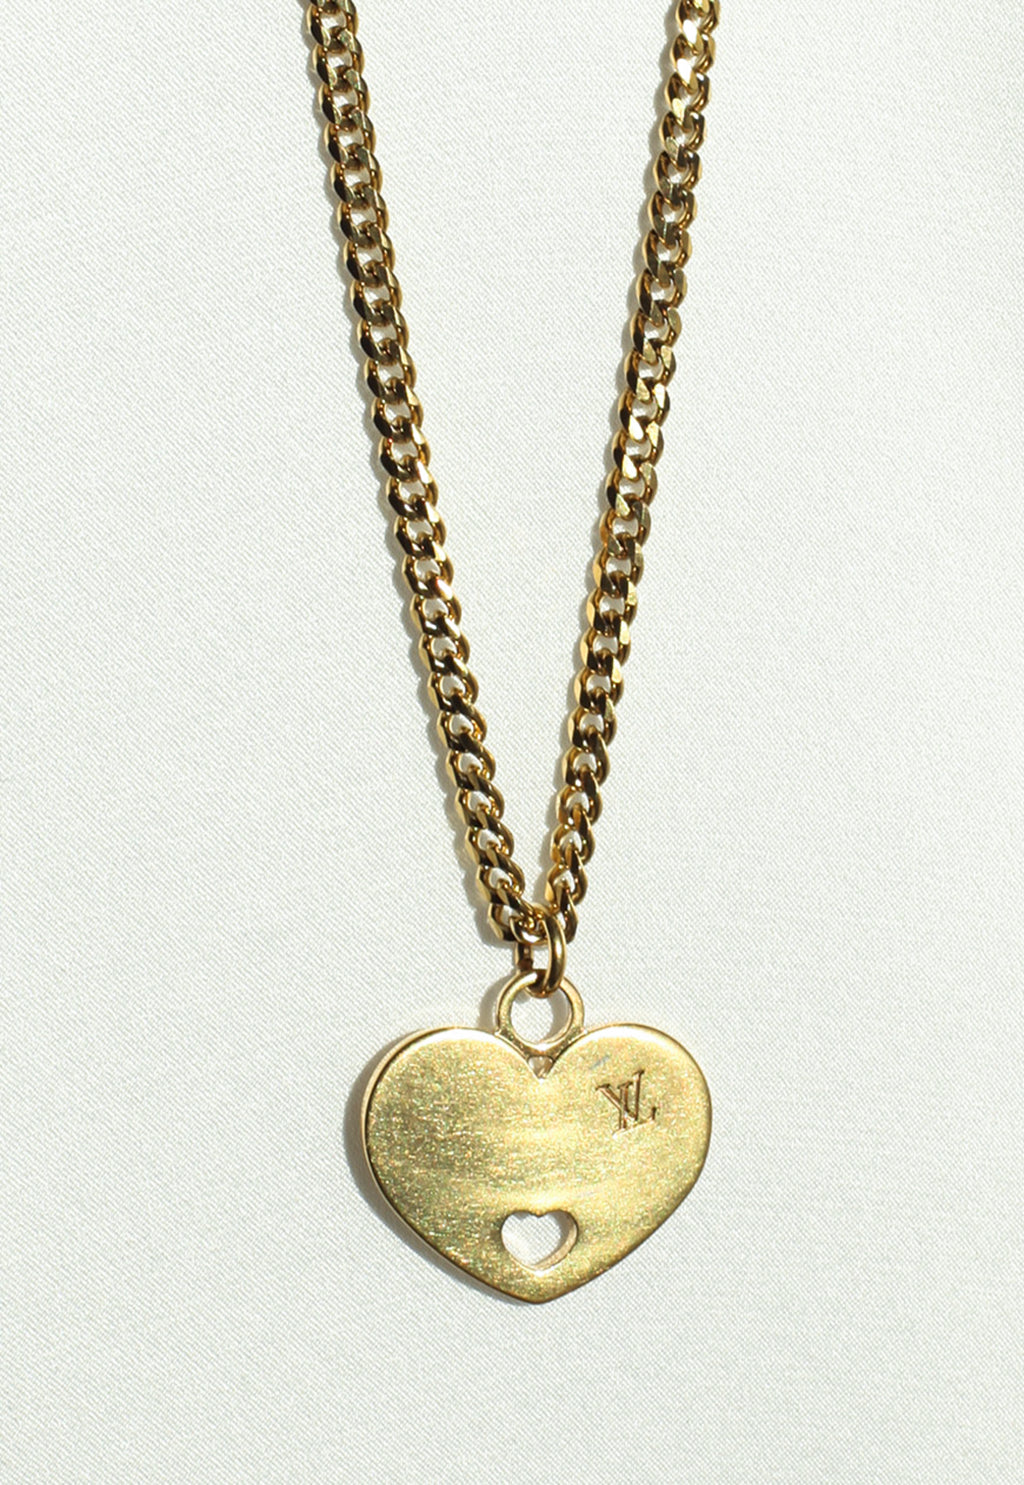 Reworked Louis Vuitton Gold Heart Heart Pendant Necklace